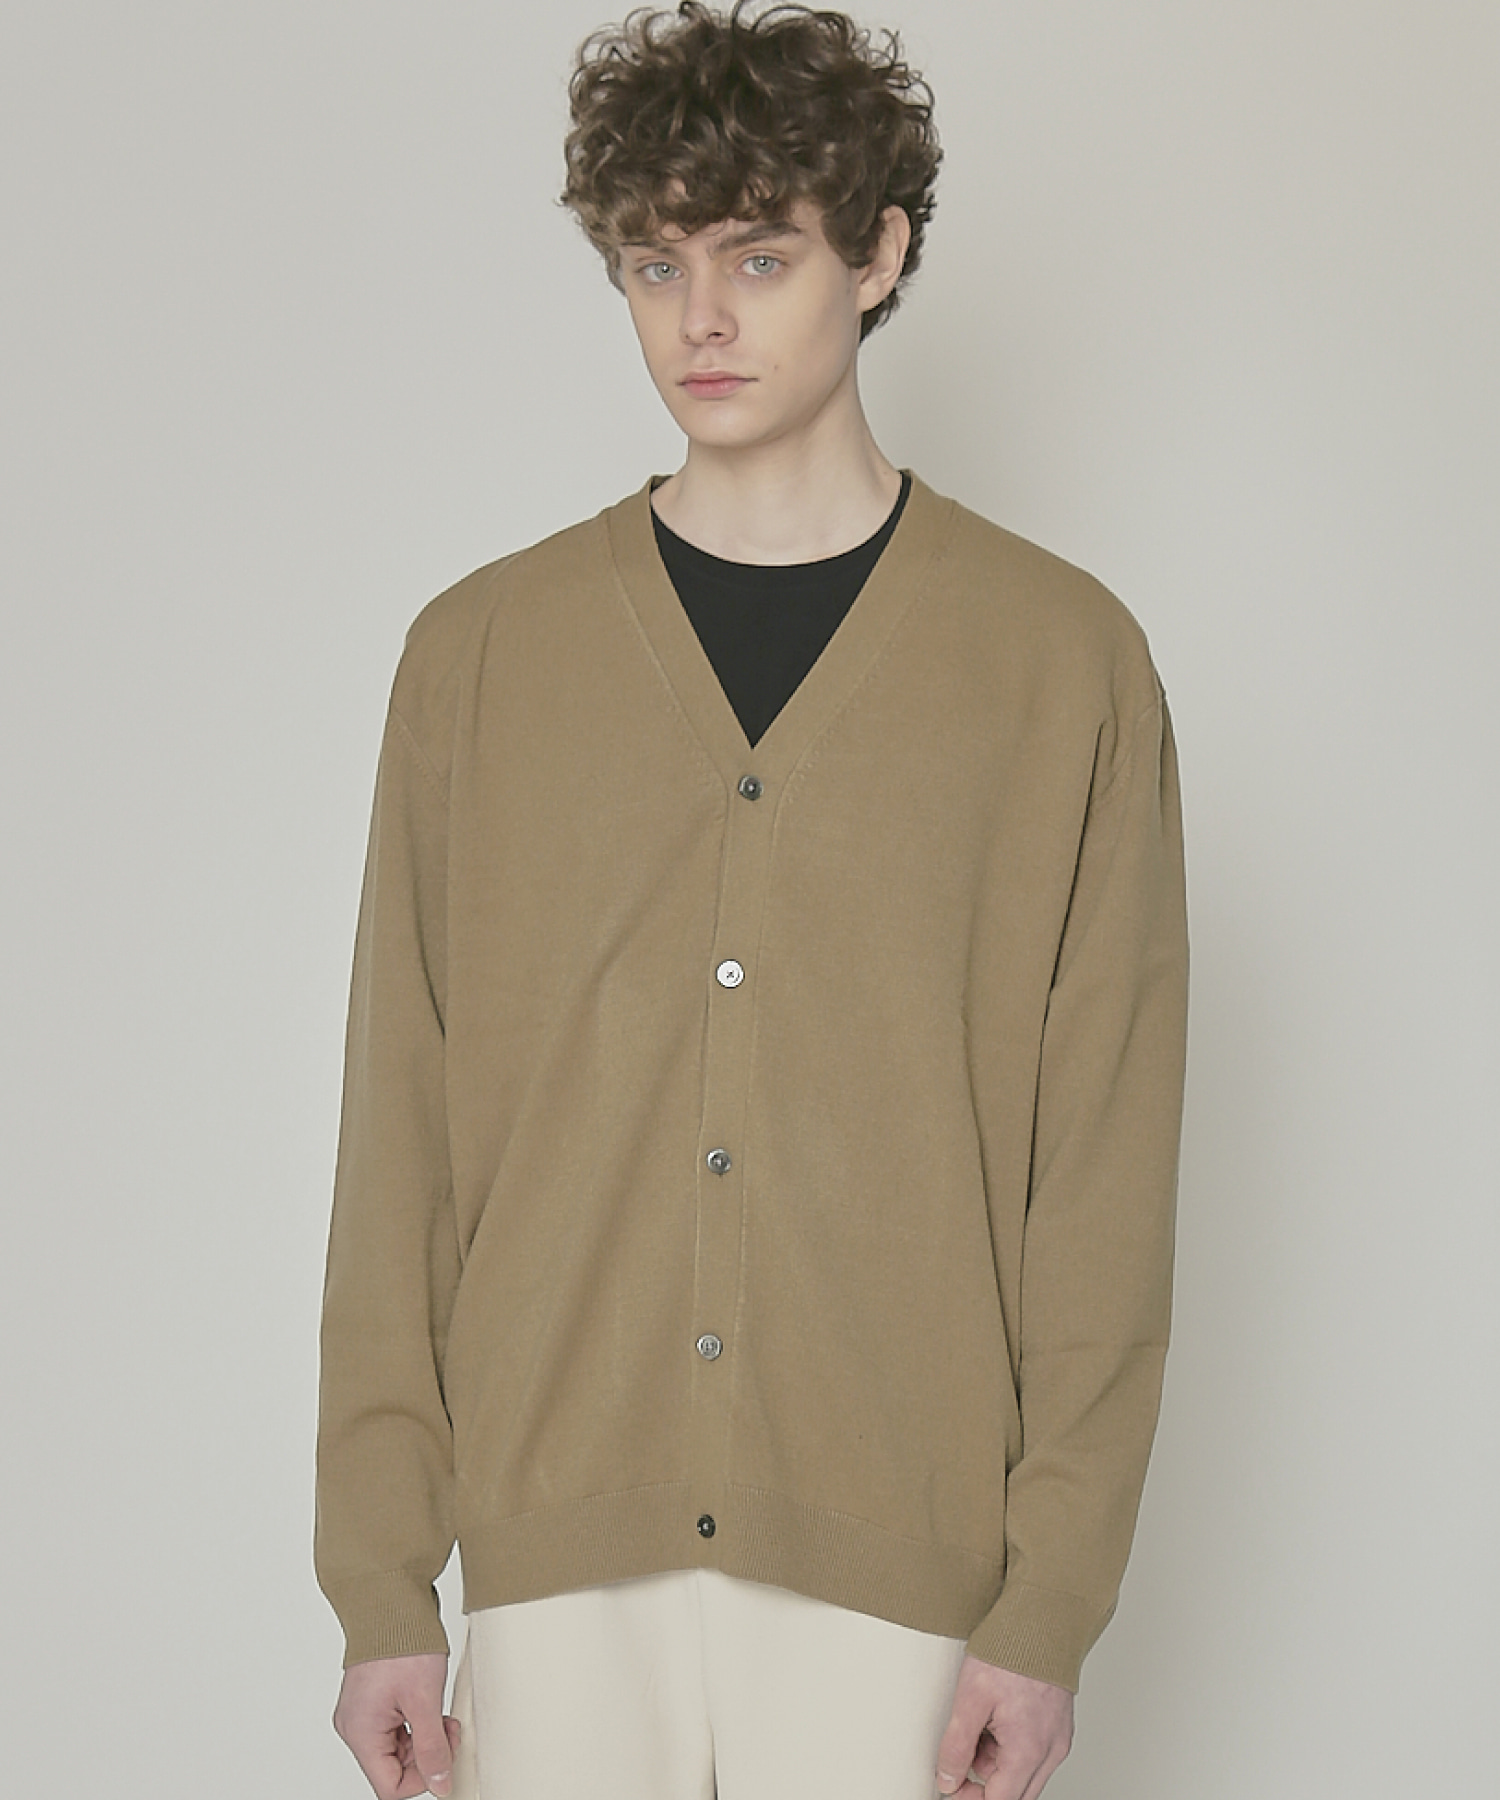 DWS SOFT BASIC CARDIGAN(DARK OLIVE)